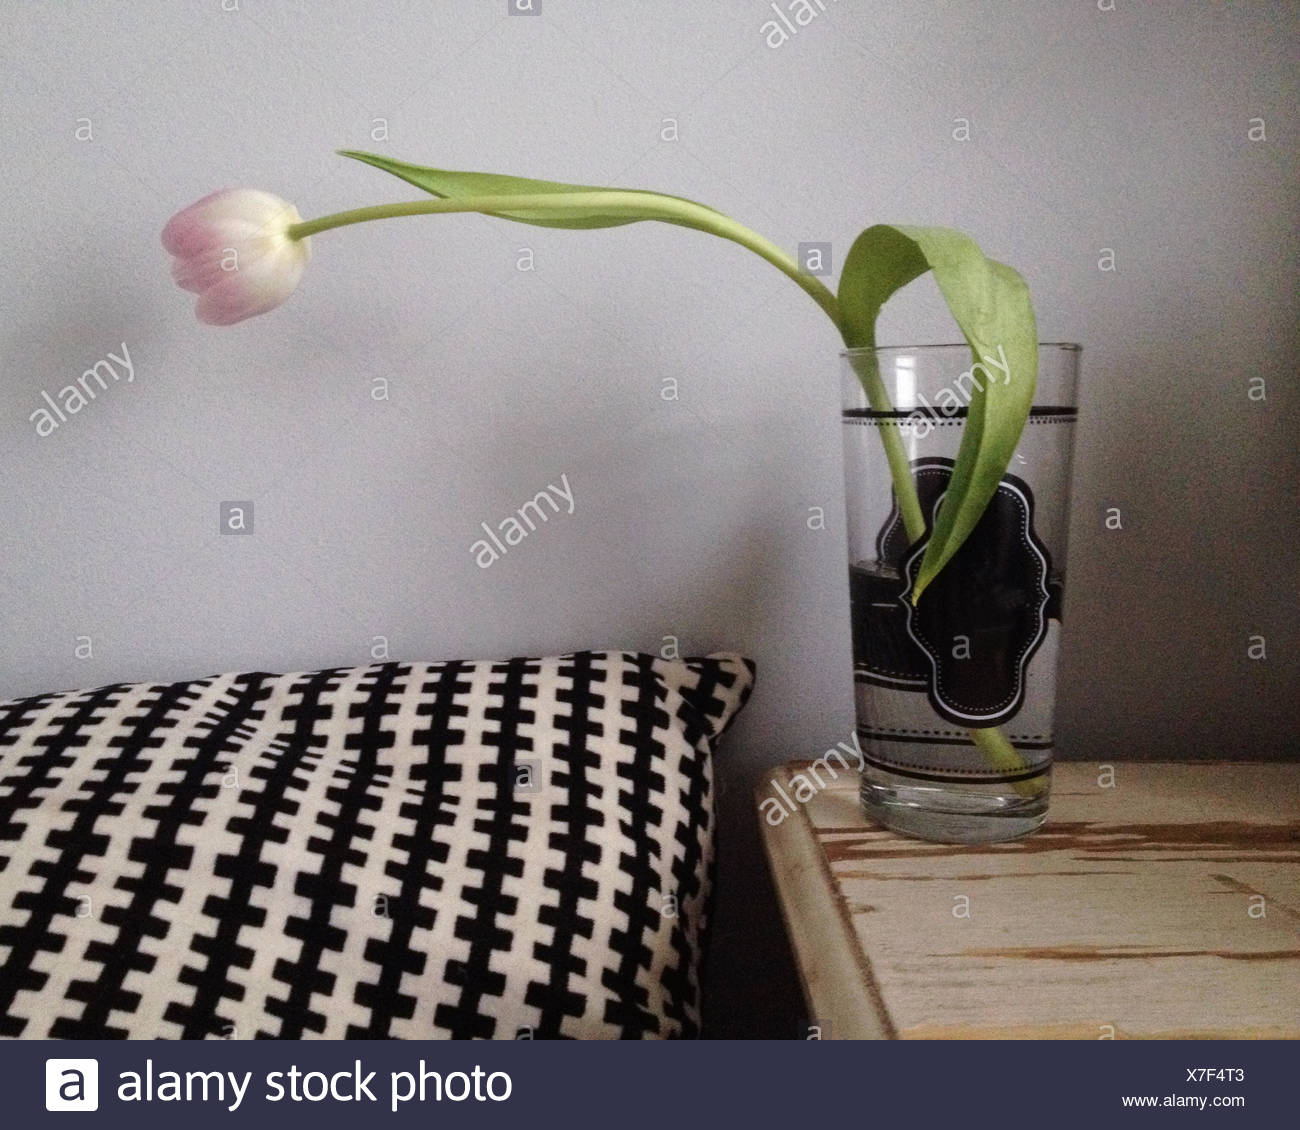 Tulip in glass of water - Stock Image